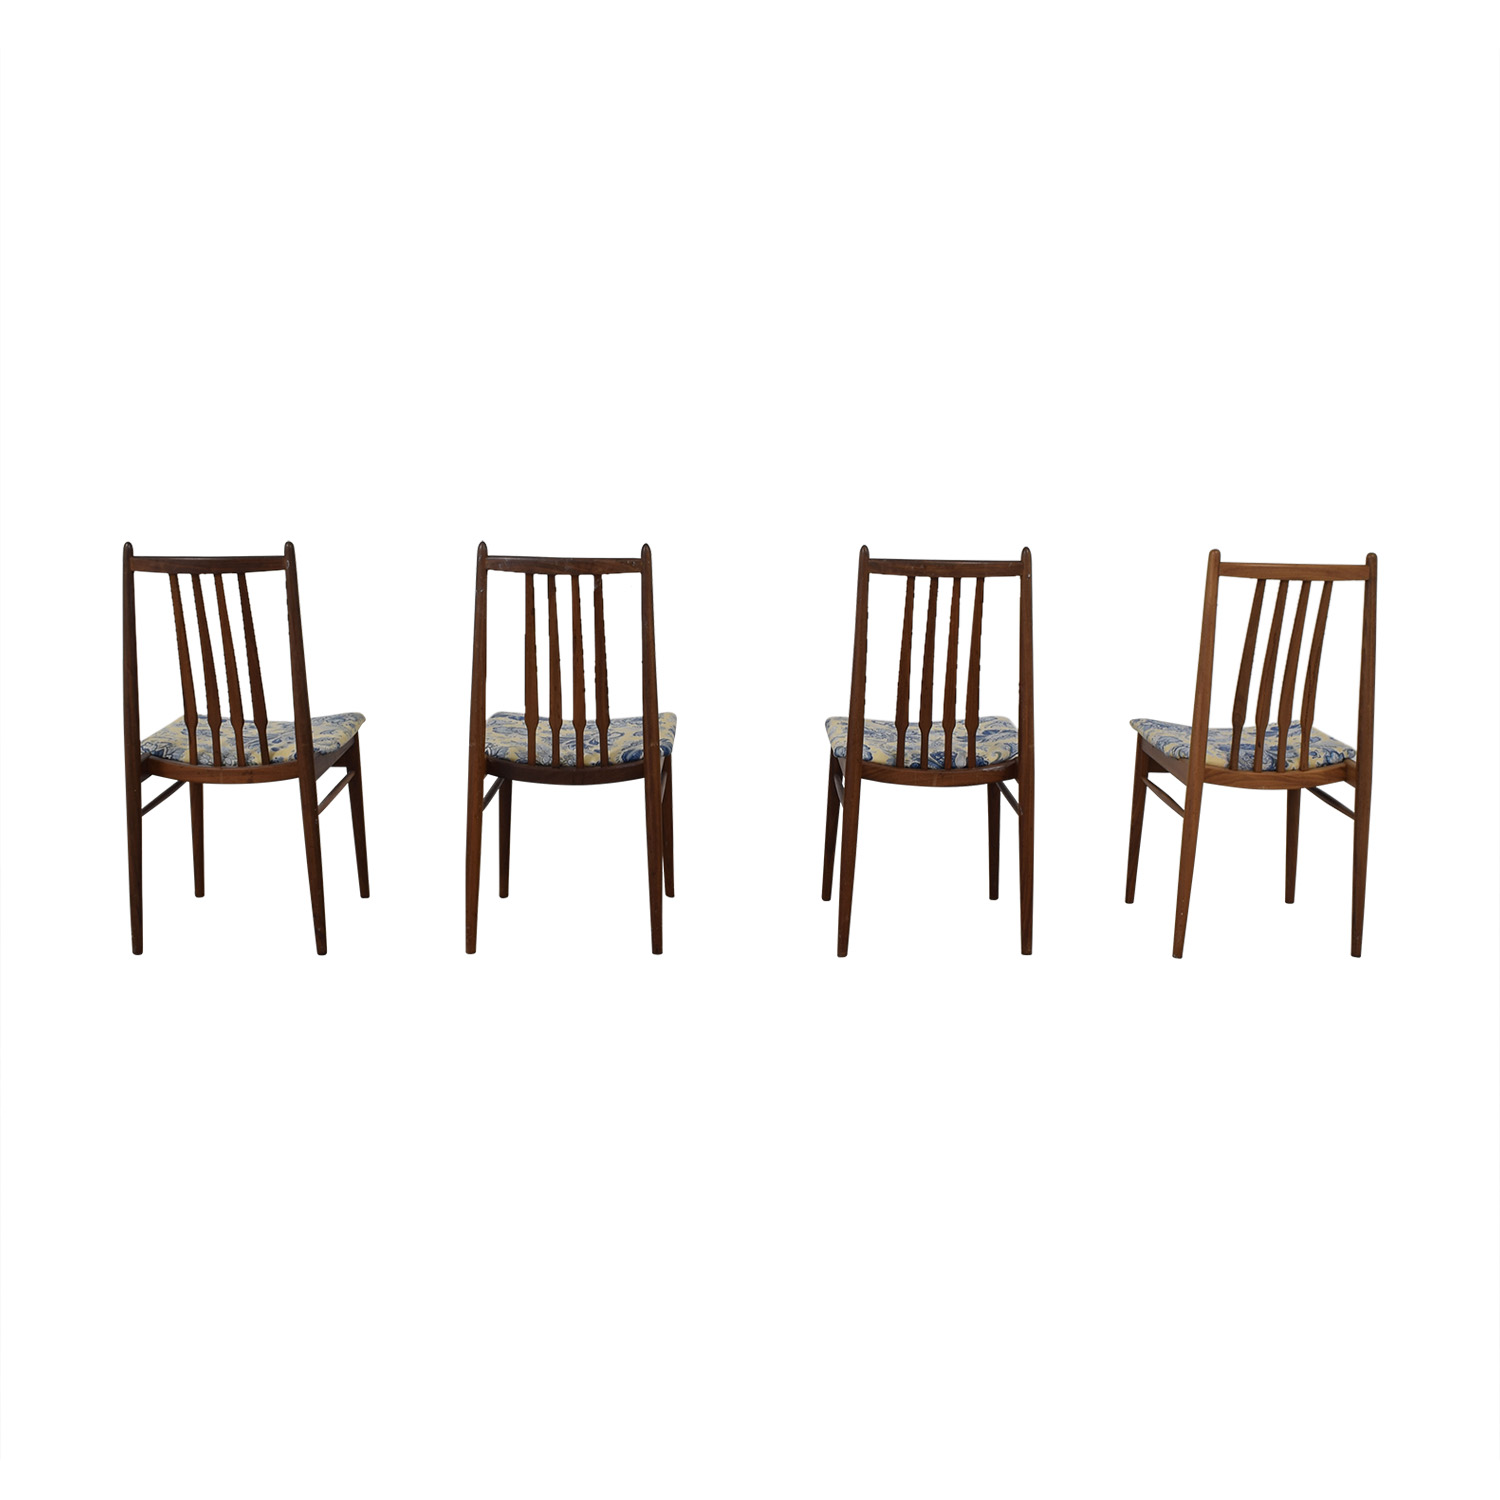 Scandinavian Wooden Chairs on sale